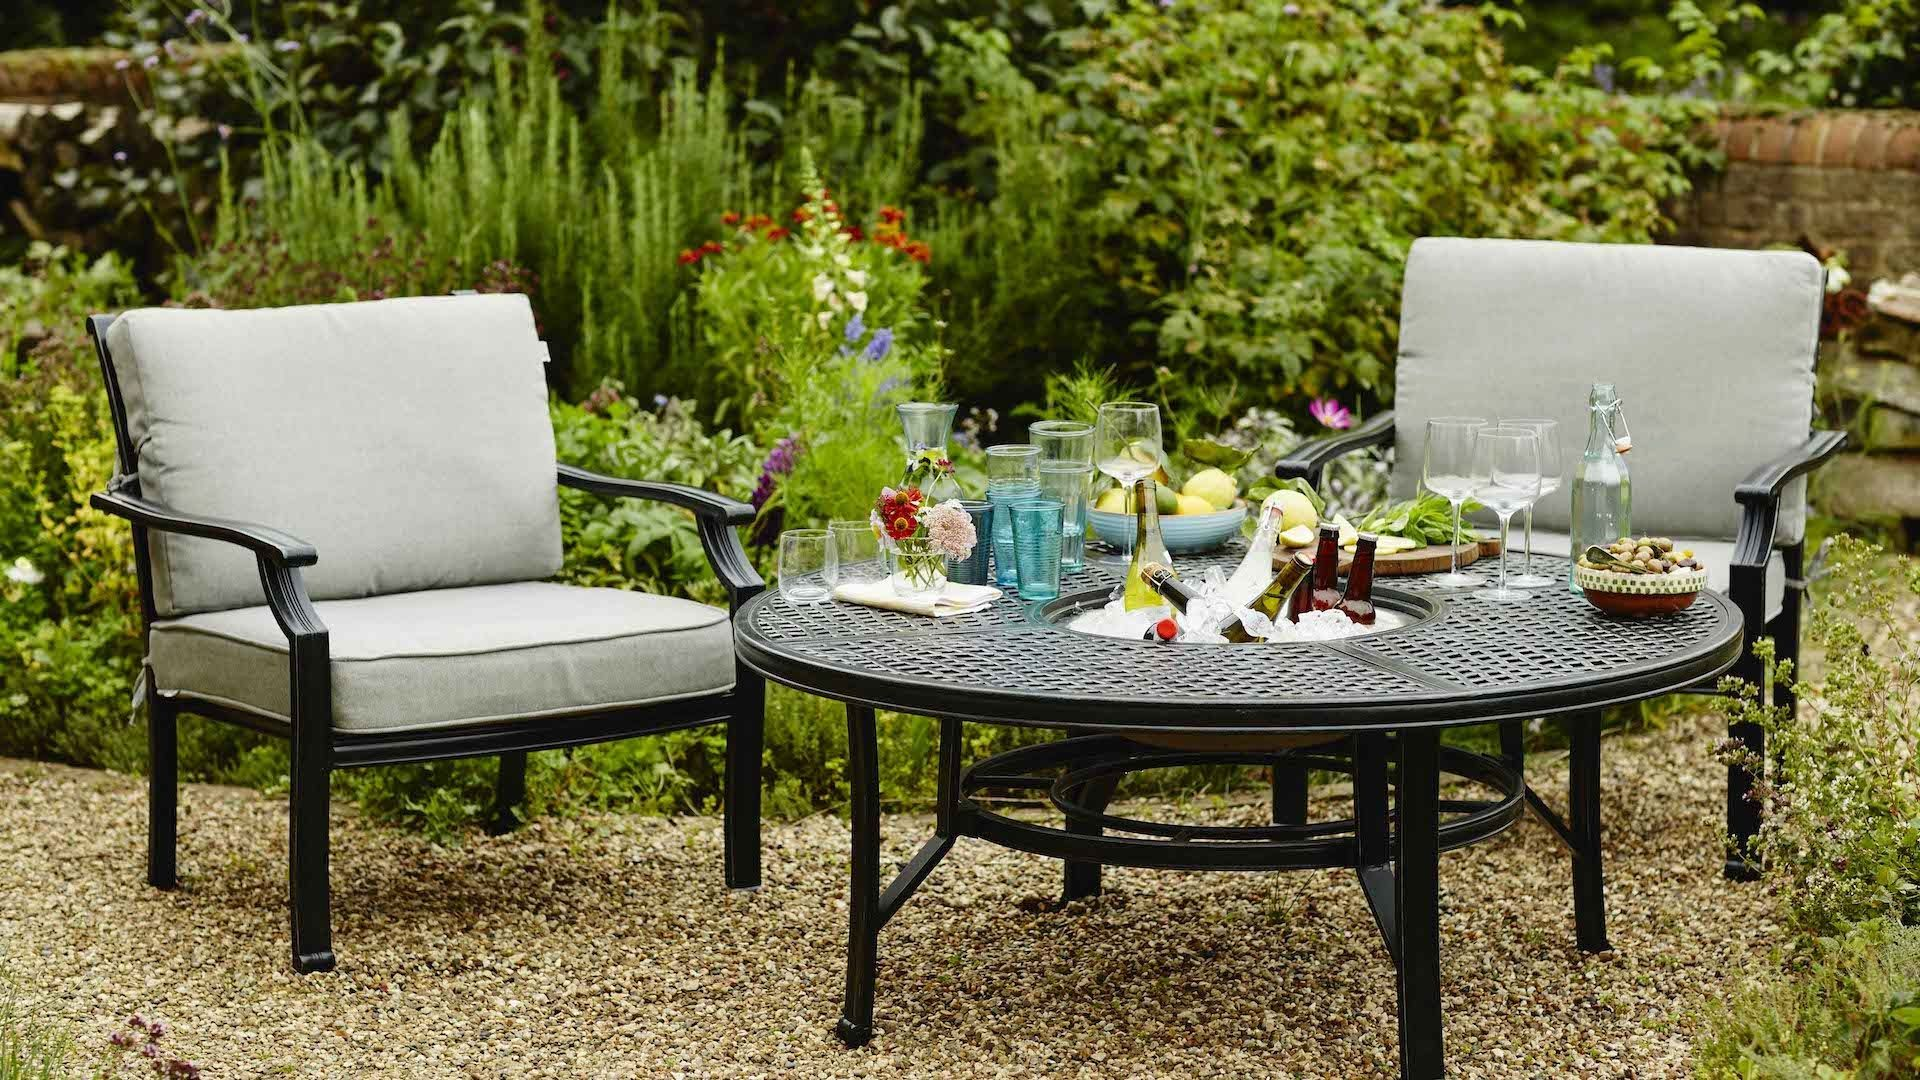 Garden Jamie Oliver Outdoor Furniture Dining Set Incredible Fire Pit Chairs TBDMHJH